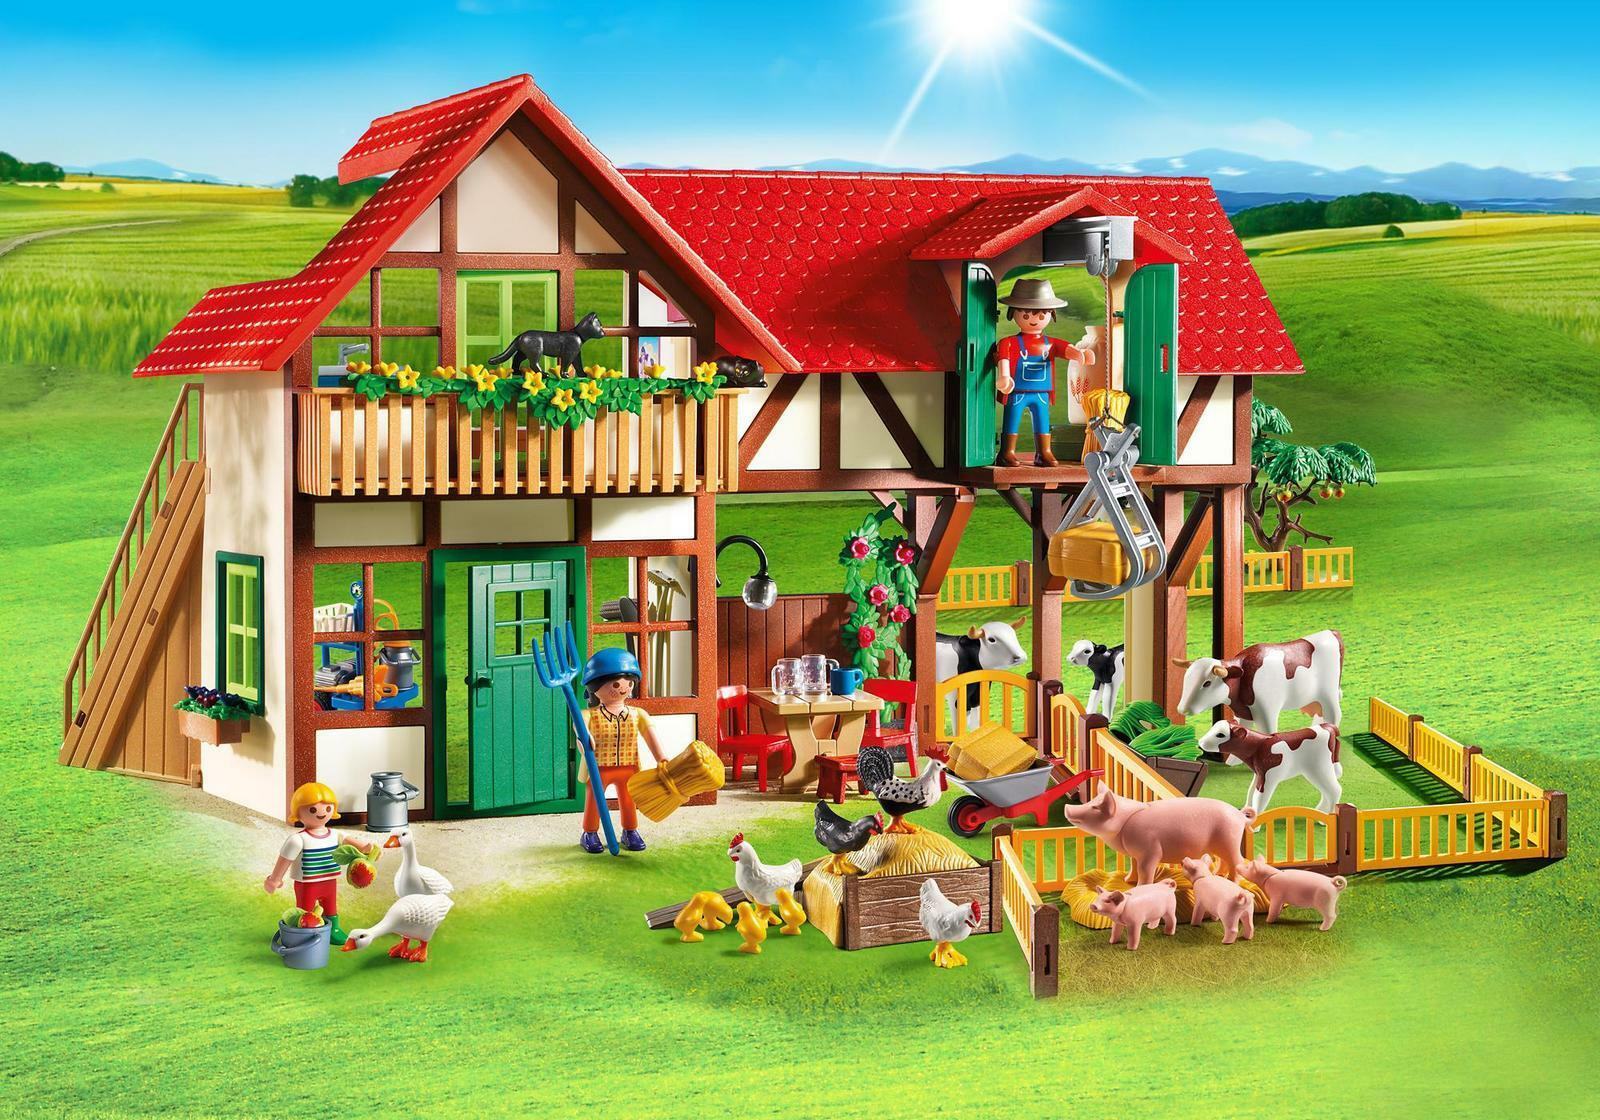 PLAYMOBIL 6120 Country Large Farm With Over 15 Animals | eBay for Farmhouse Playmobil  197uhy